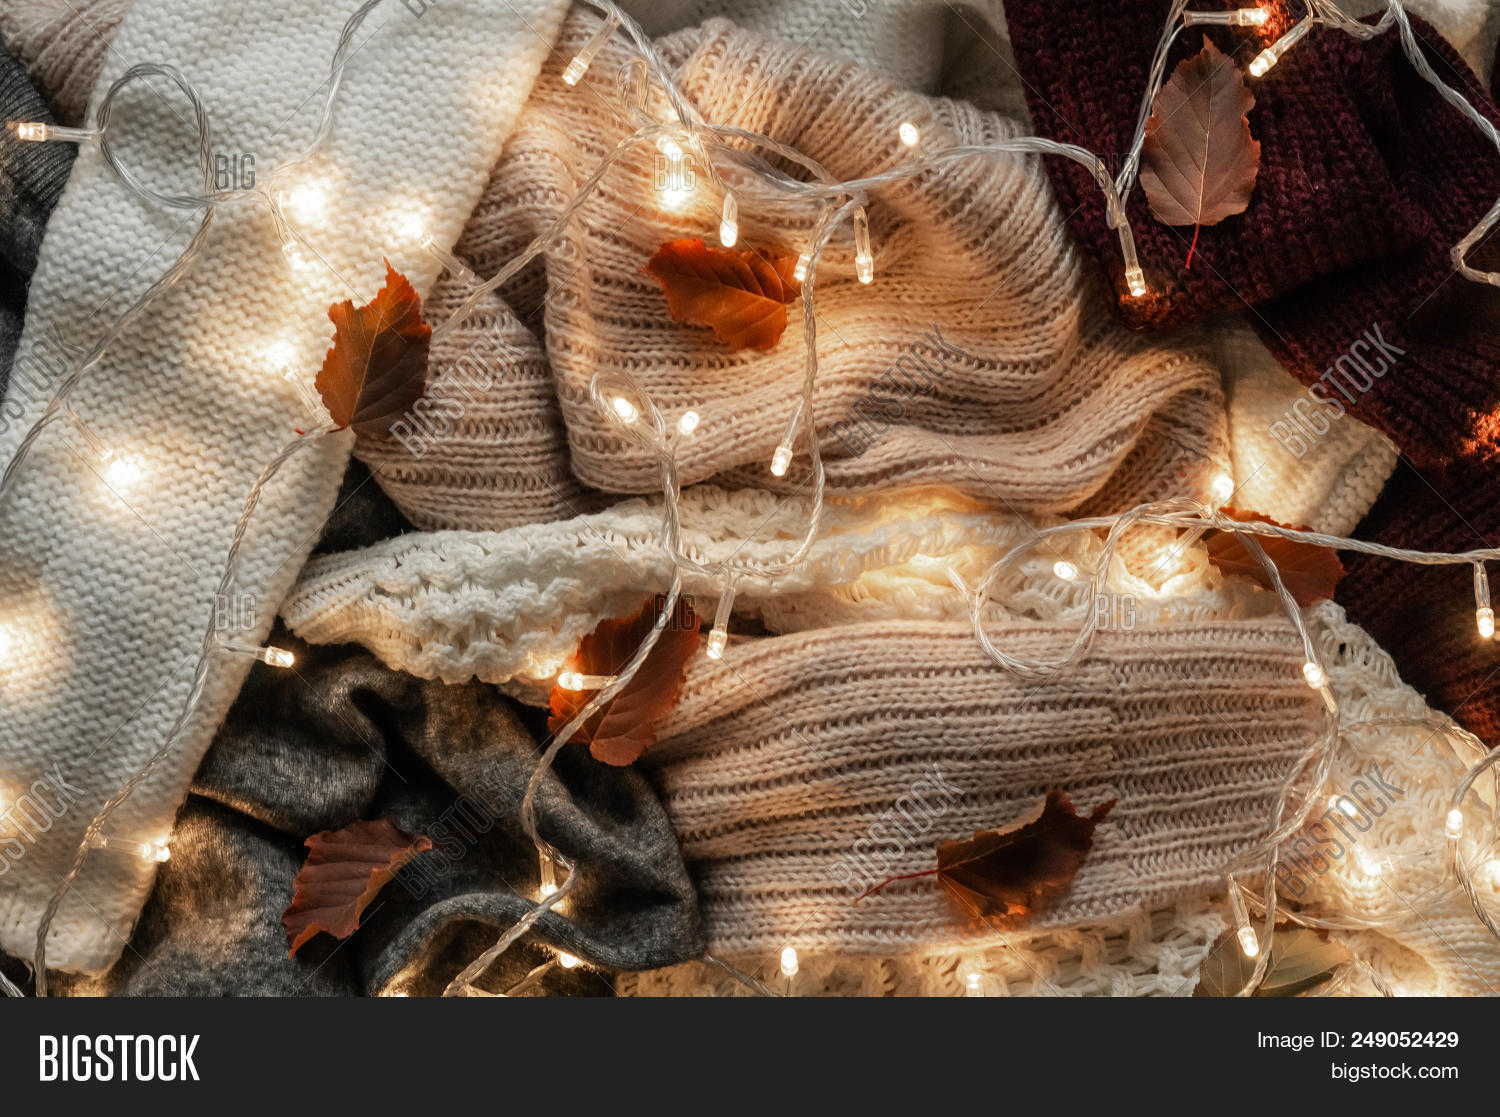 bac79df721 Background With Warm Sweaters. Pile Of Knitted Clothes With Autumn Leaves  And A Garland